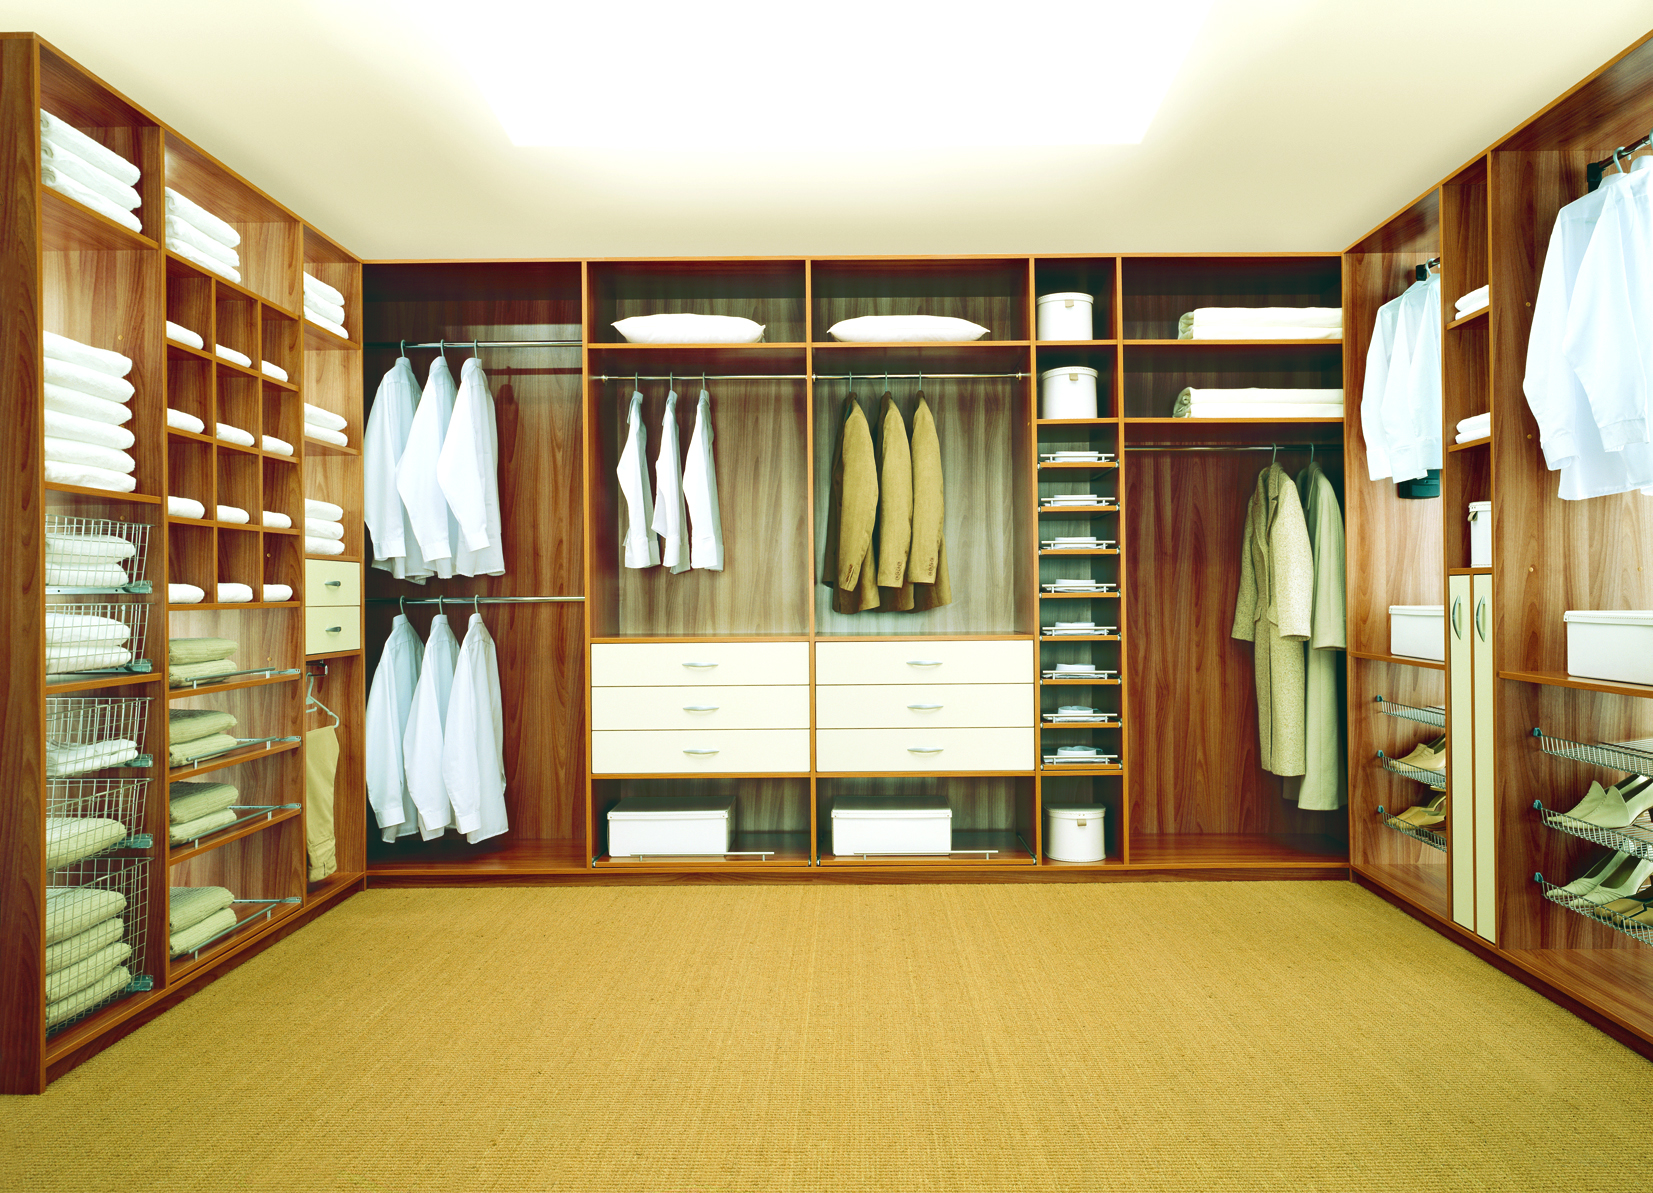 Walk in closet or dressing room with shelves and drawers all made to